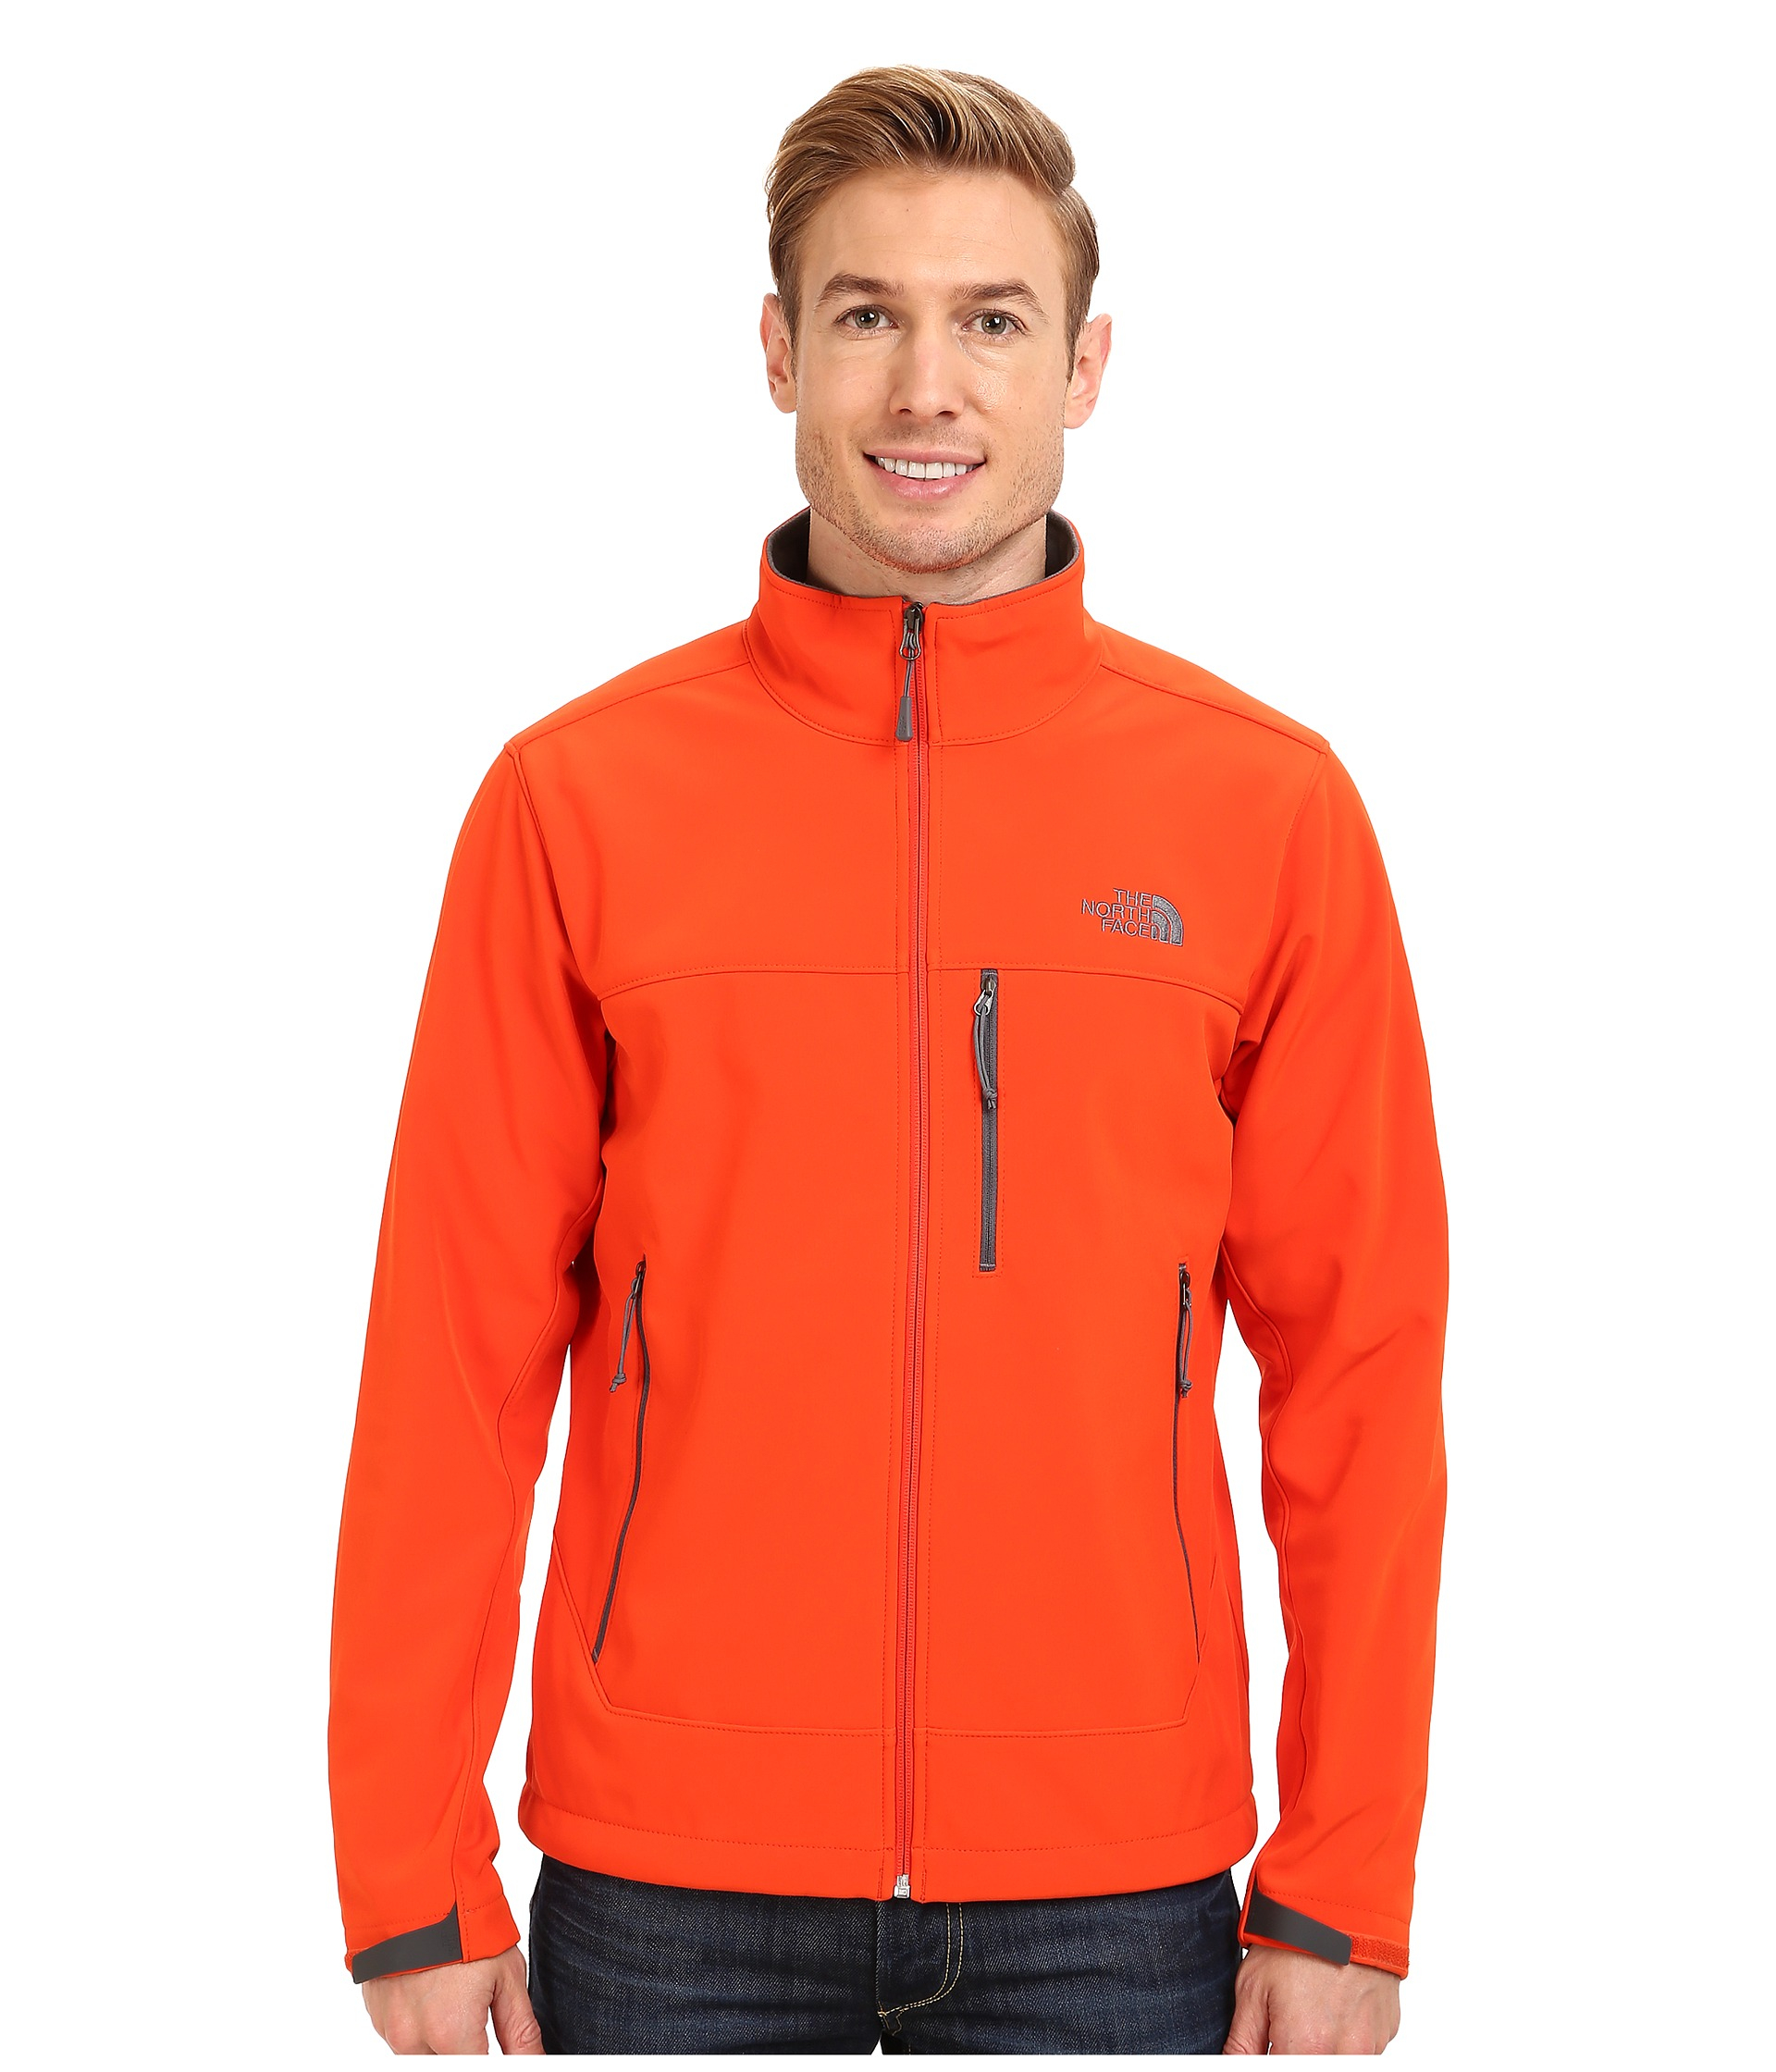 The North Face Apex Bionic Jacket In Orange For Men